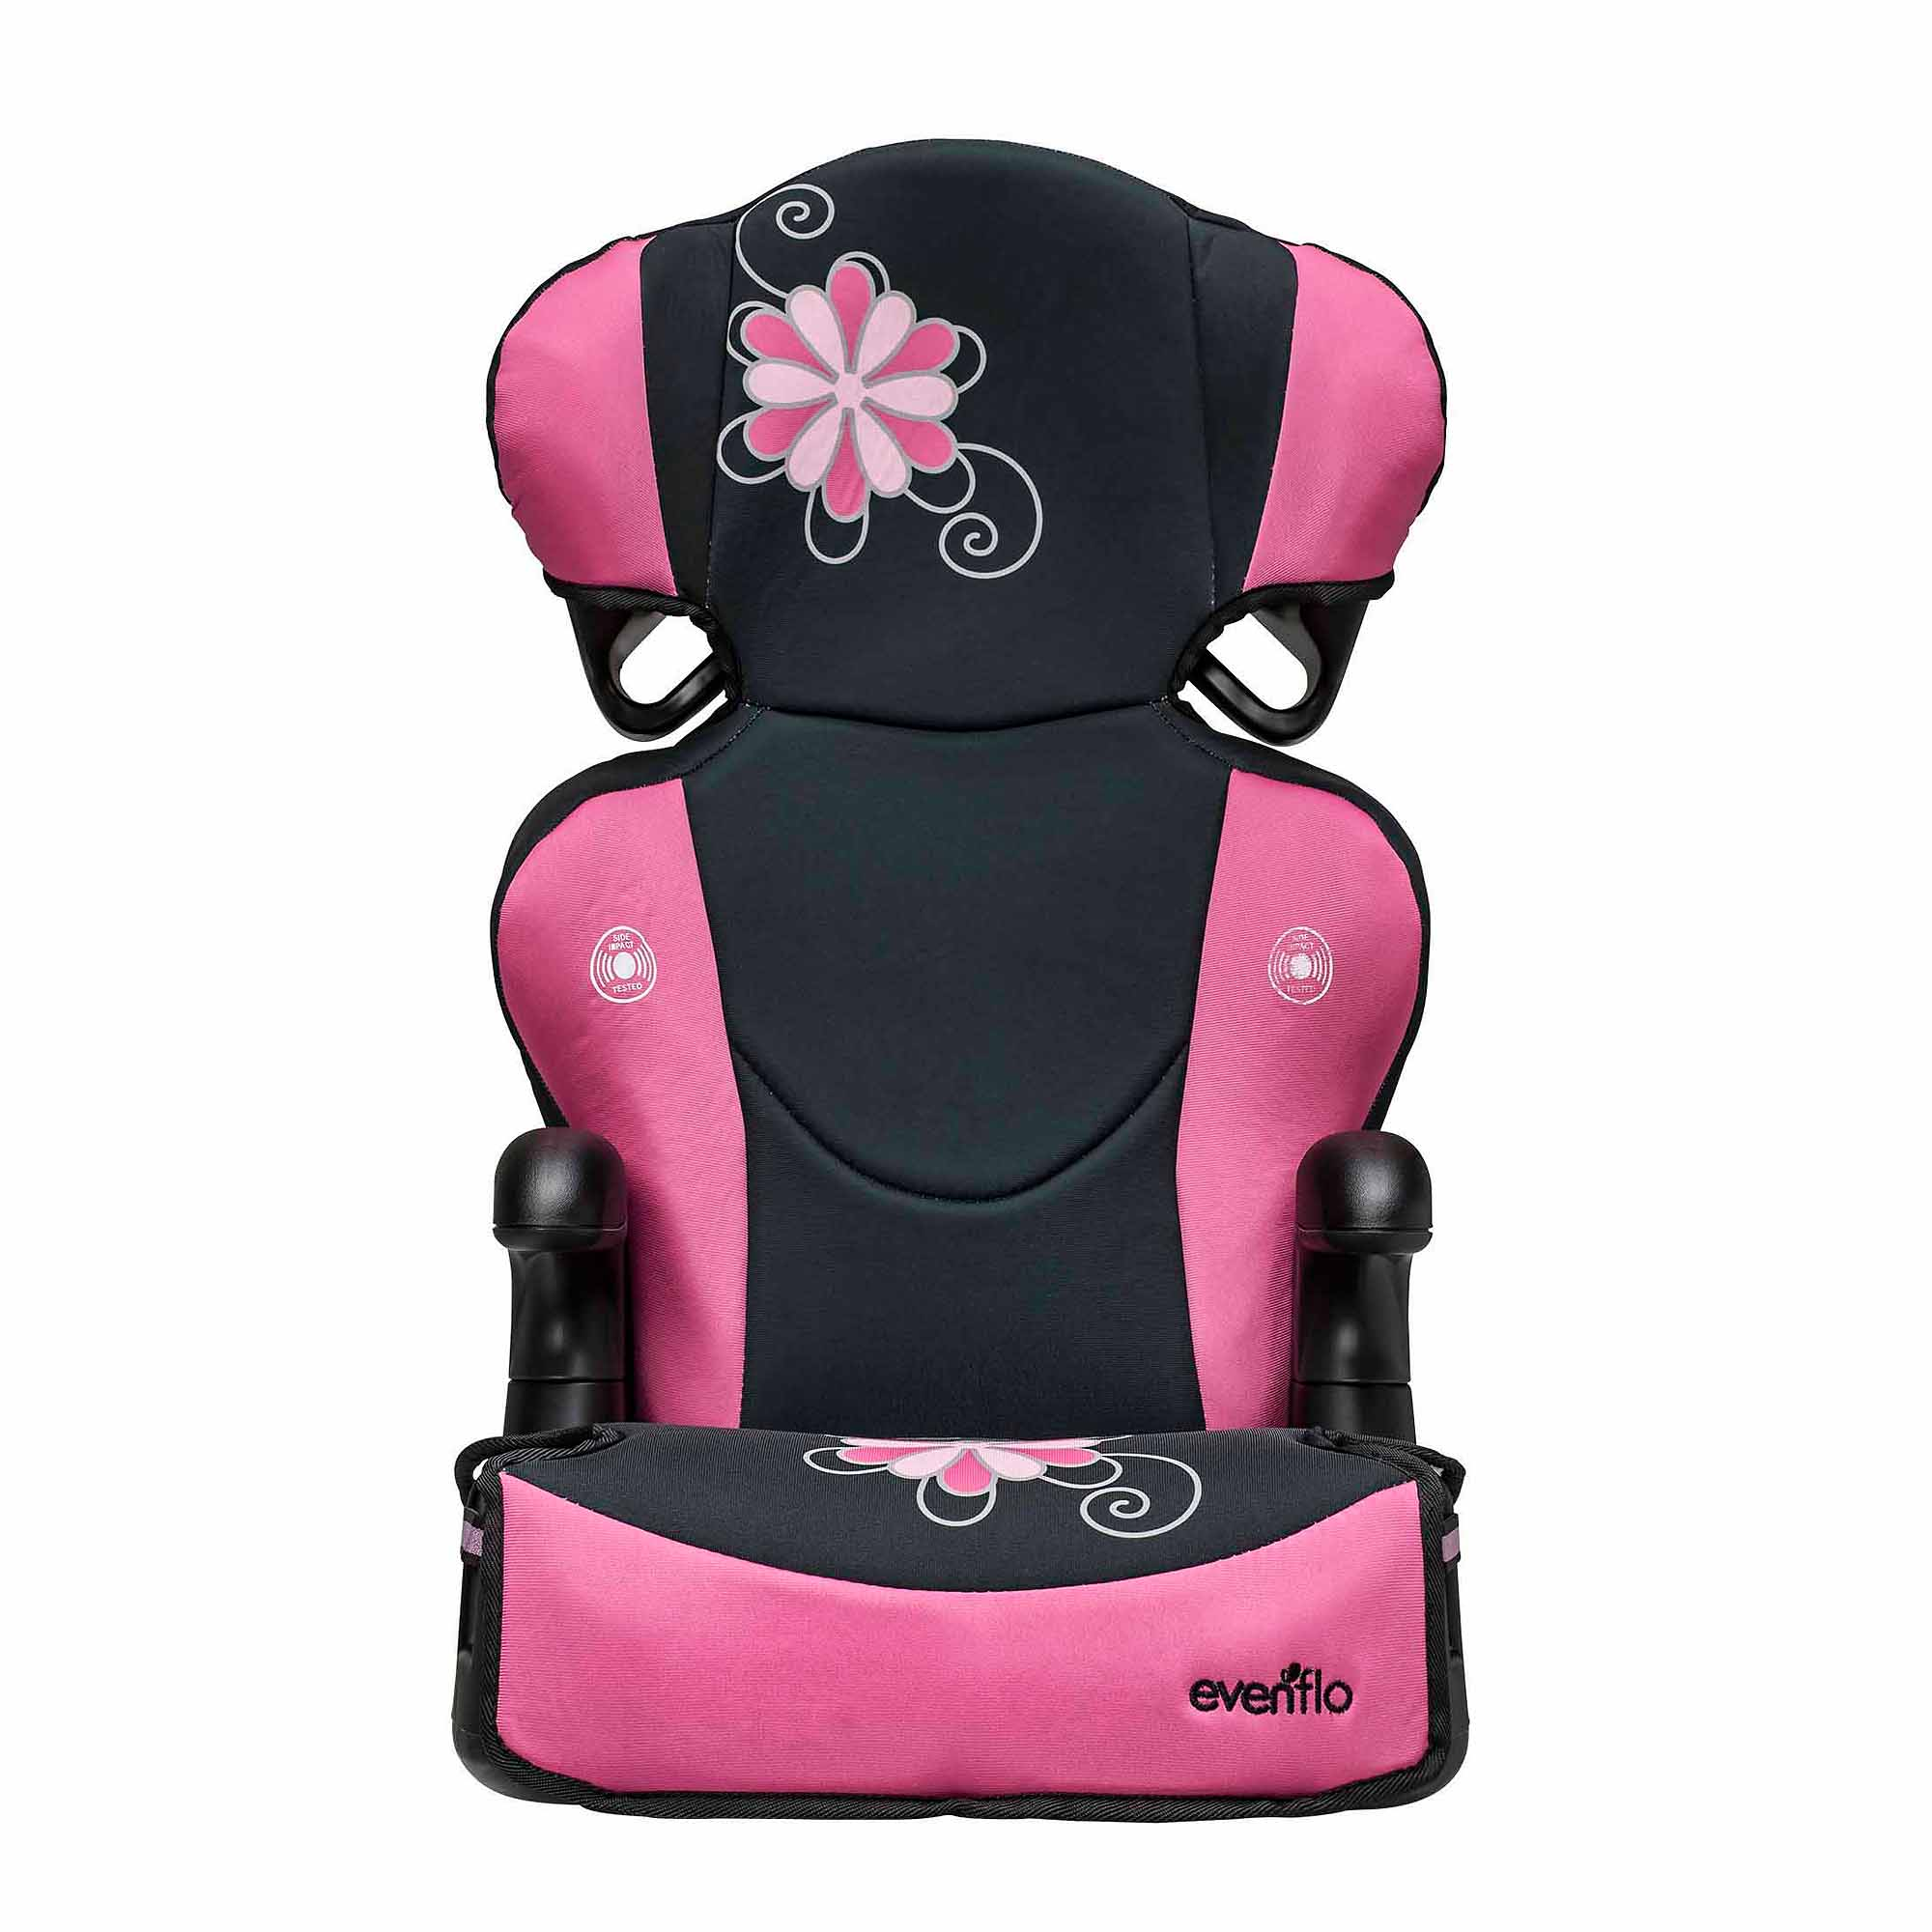 evenflo big kid sport high back booster car seat danica walmartcom